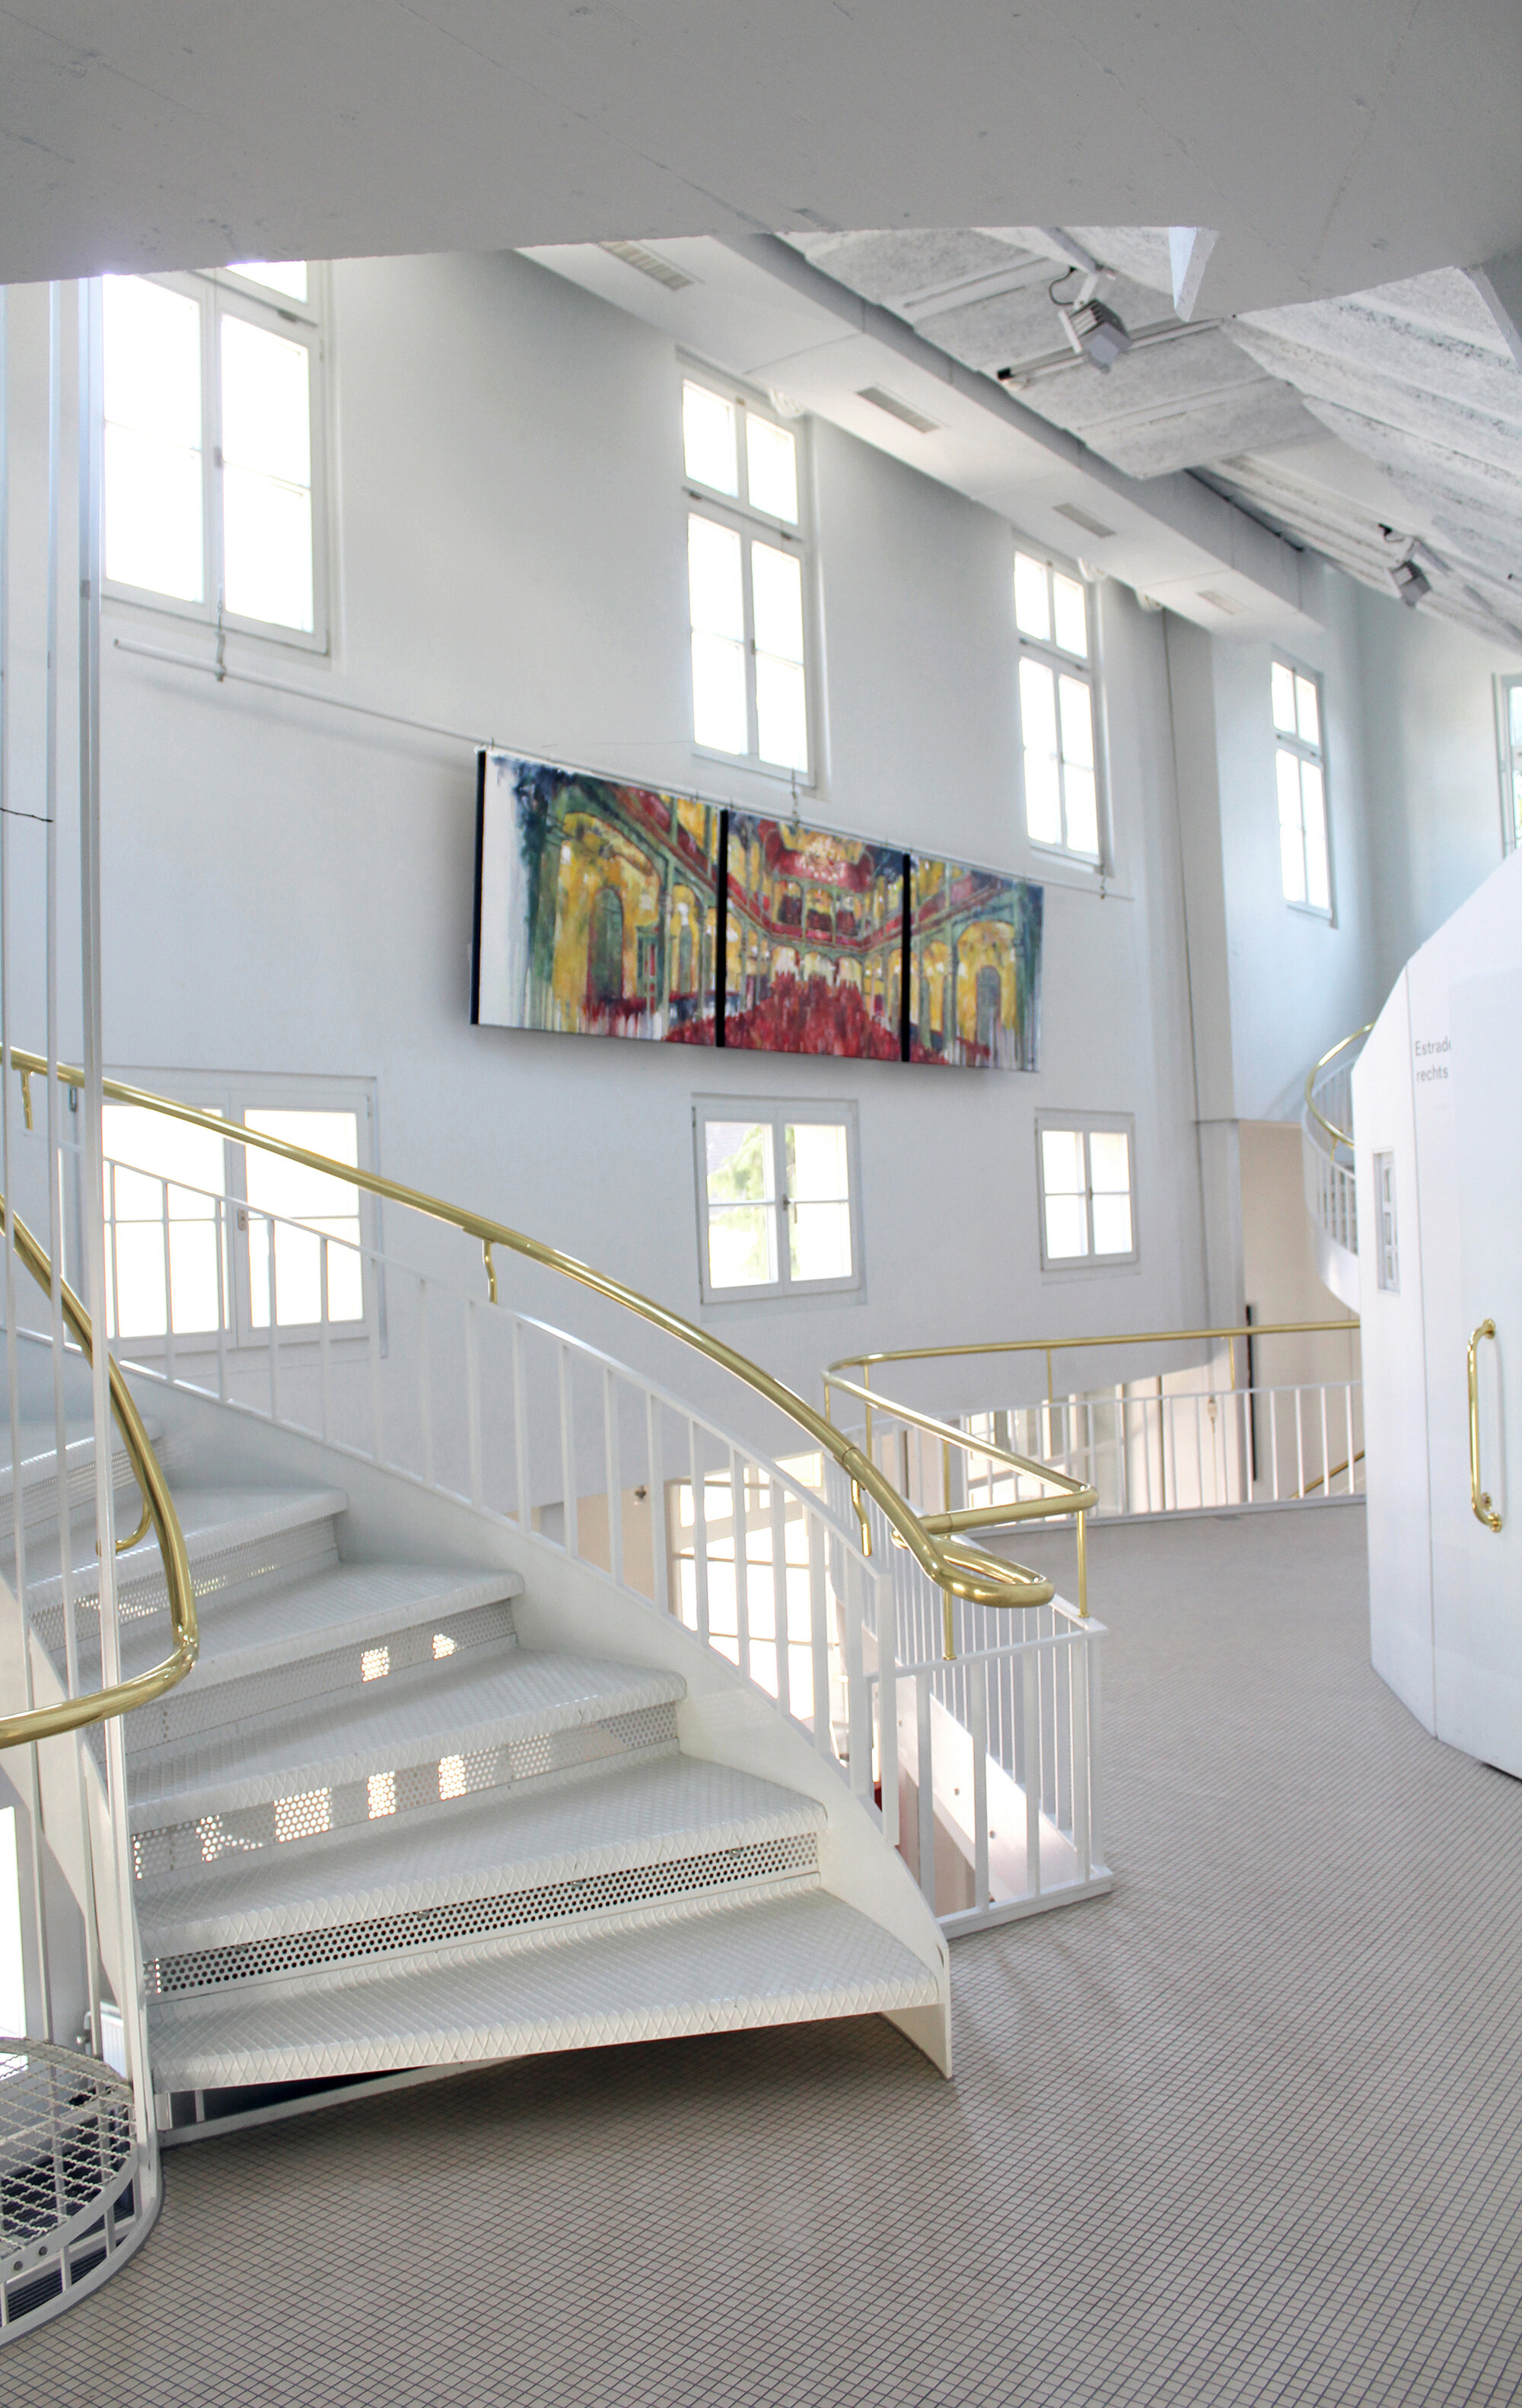 Tonhalle Wil - Applause , Foyer Tonhalle Wil (CH)